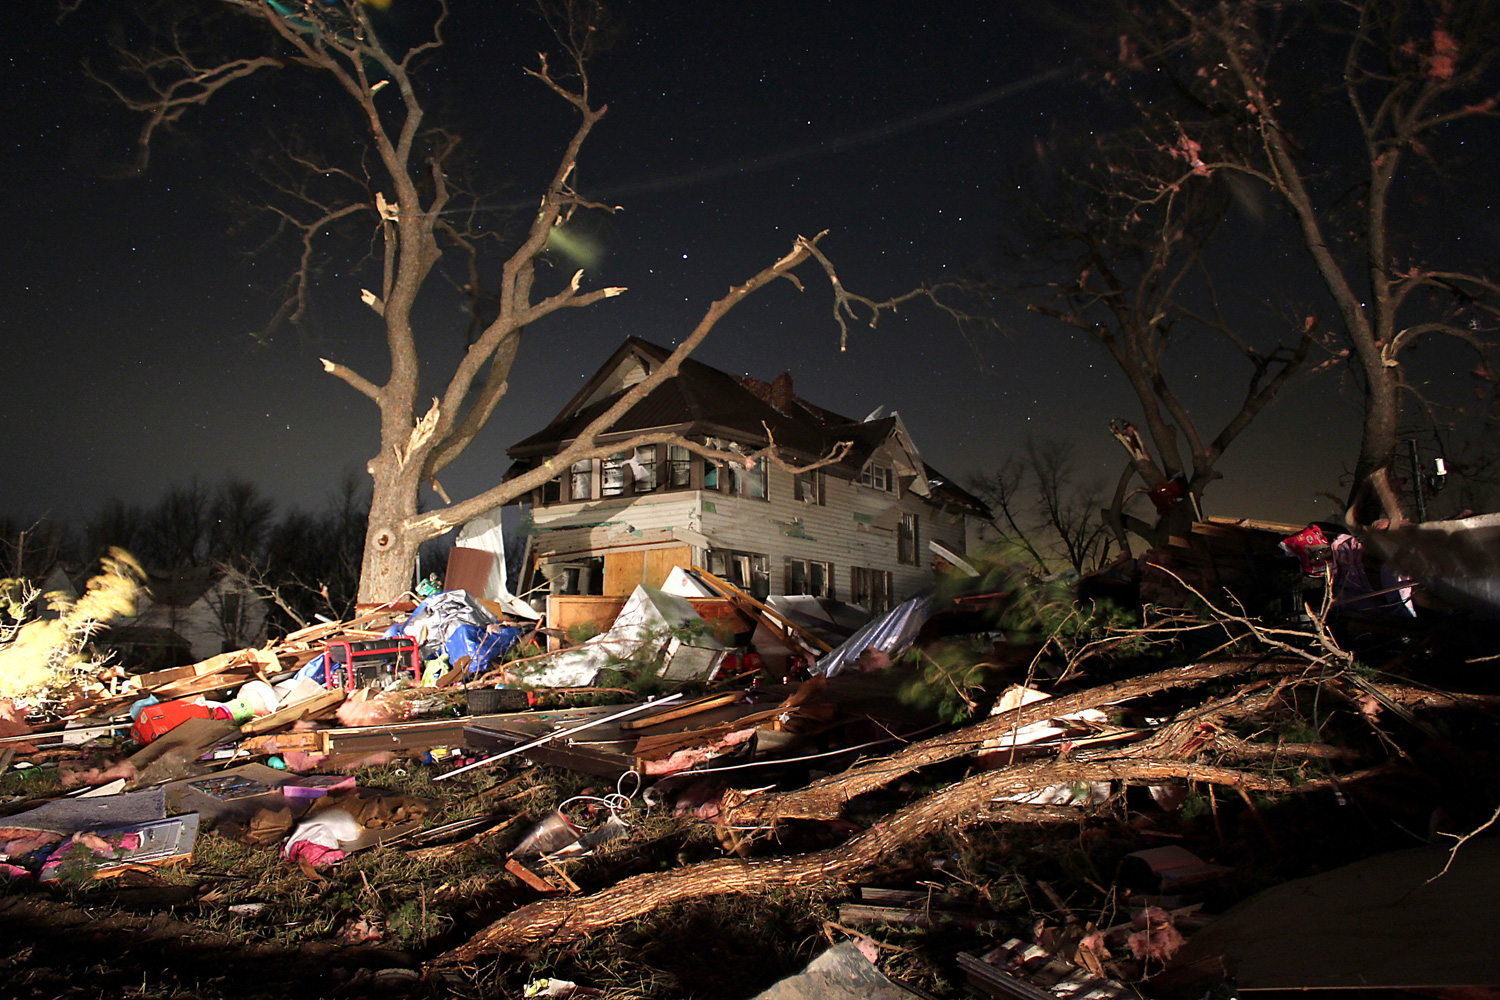 Feb. 29, 2012. Broken branches and household debris are scattered across a lawn  in Harveyville, Kan., after an apparent tornado passed through the town.